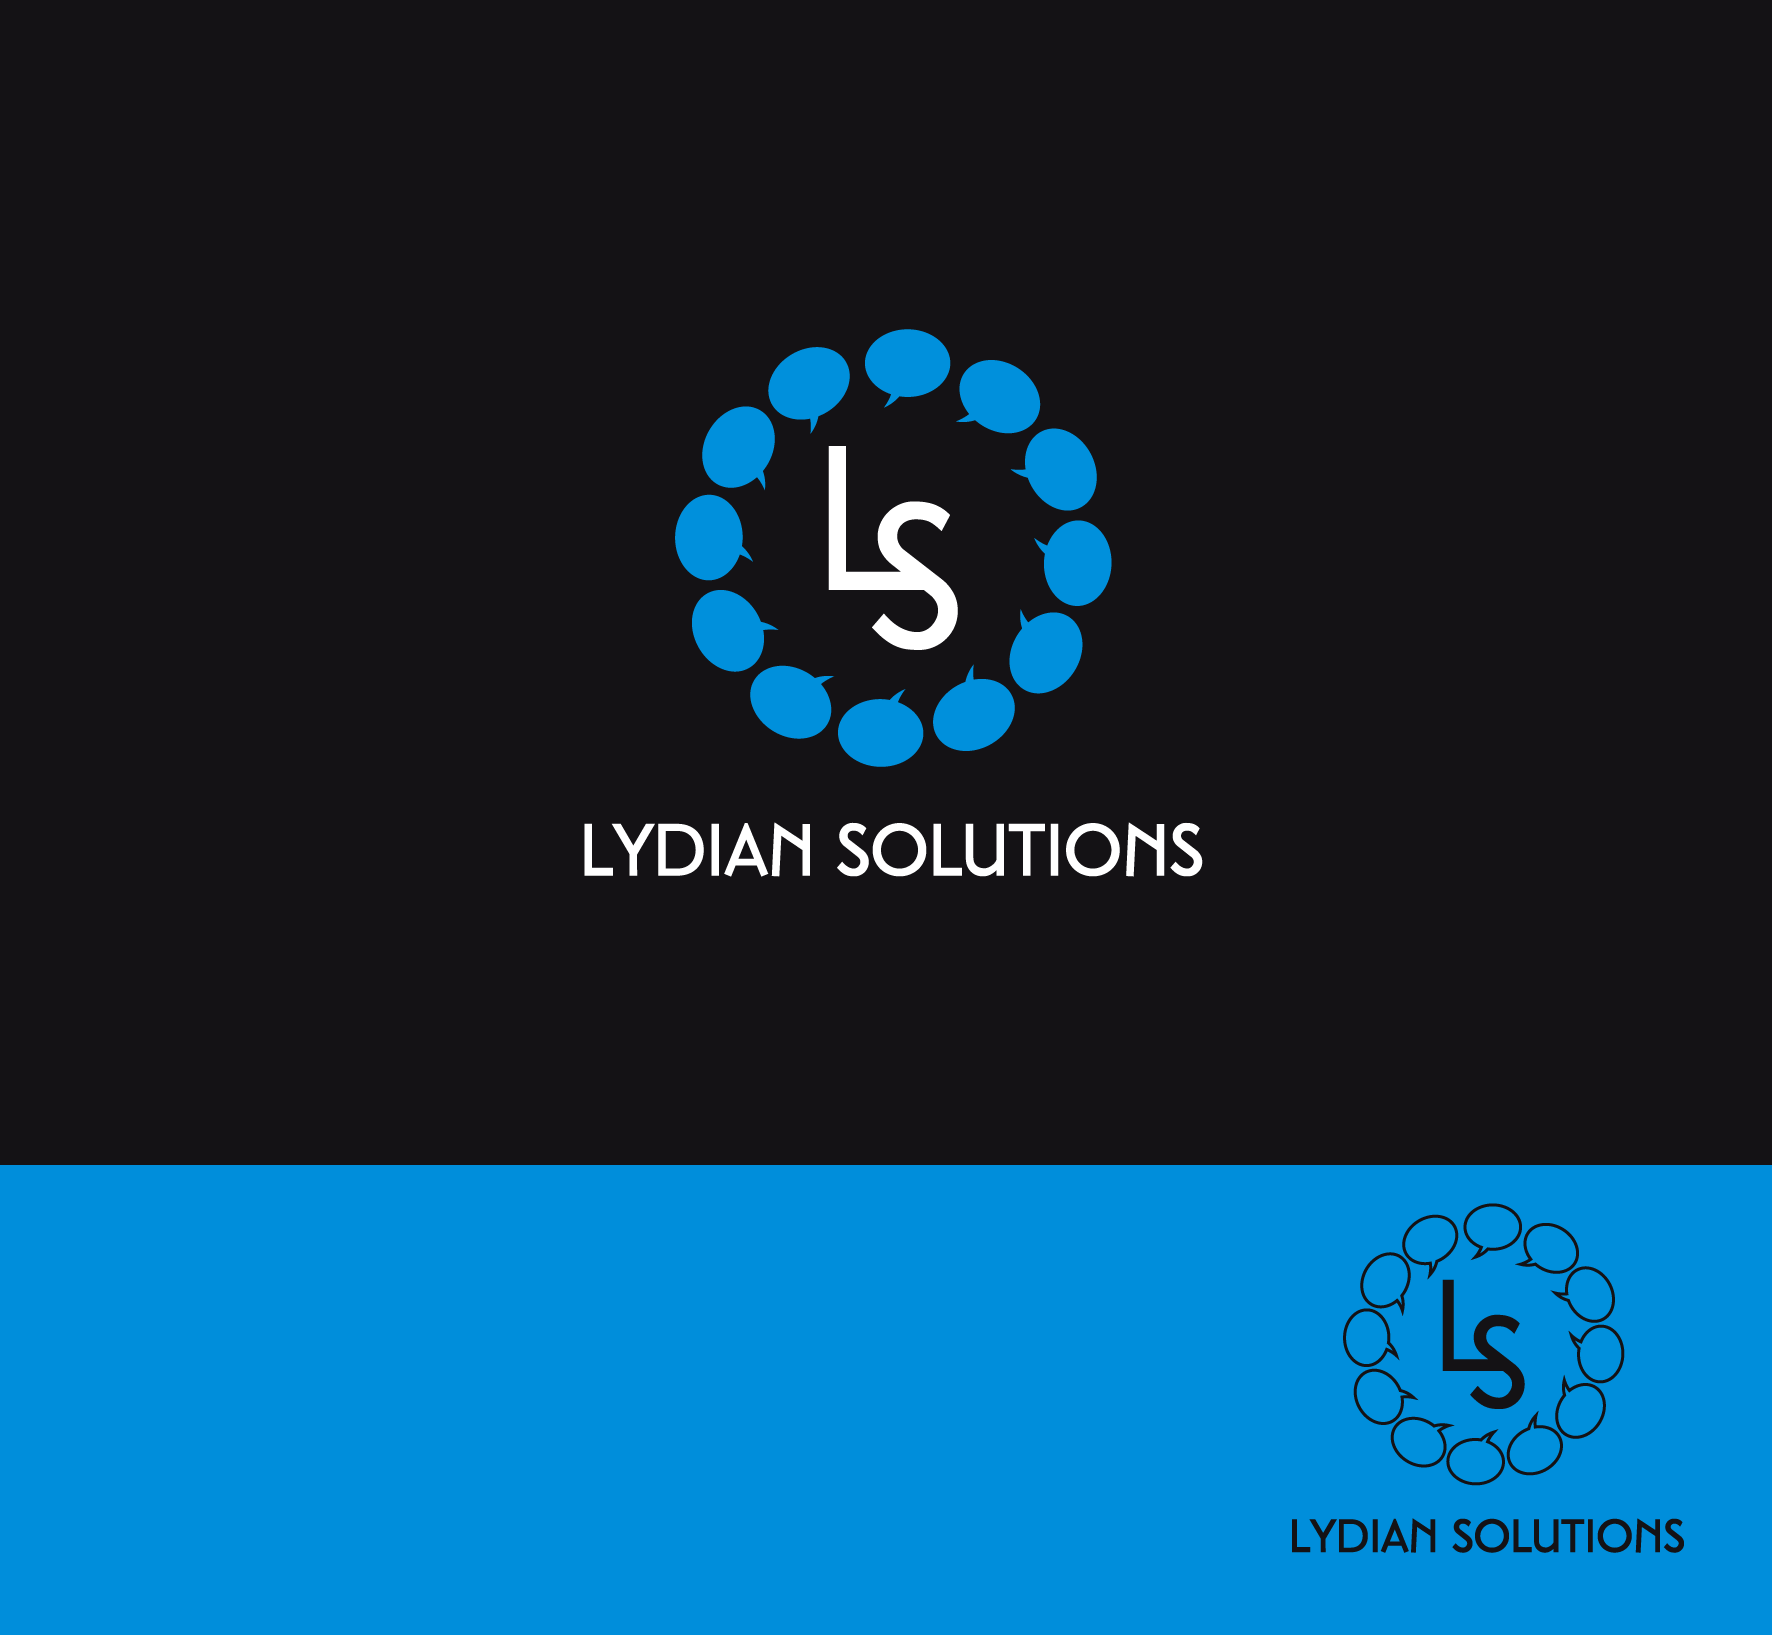 Logo Design by luna - Entry No. 44 in the Logo Design Contest Fun Logo Design for Lydian Solutions.